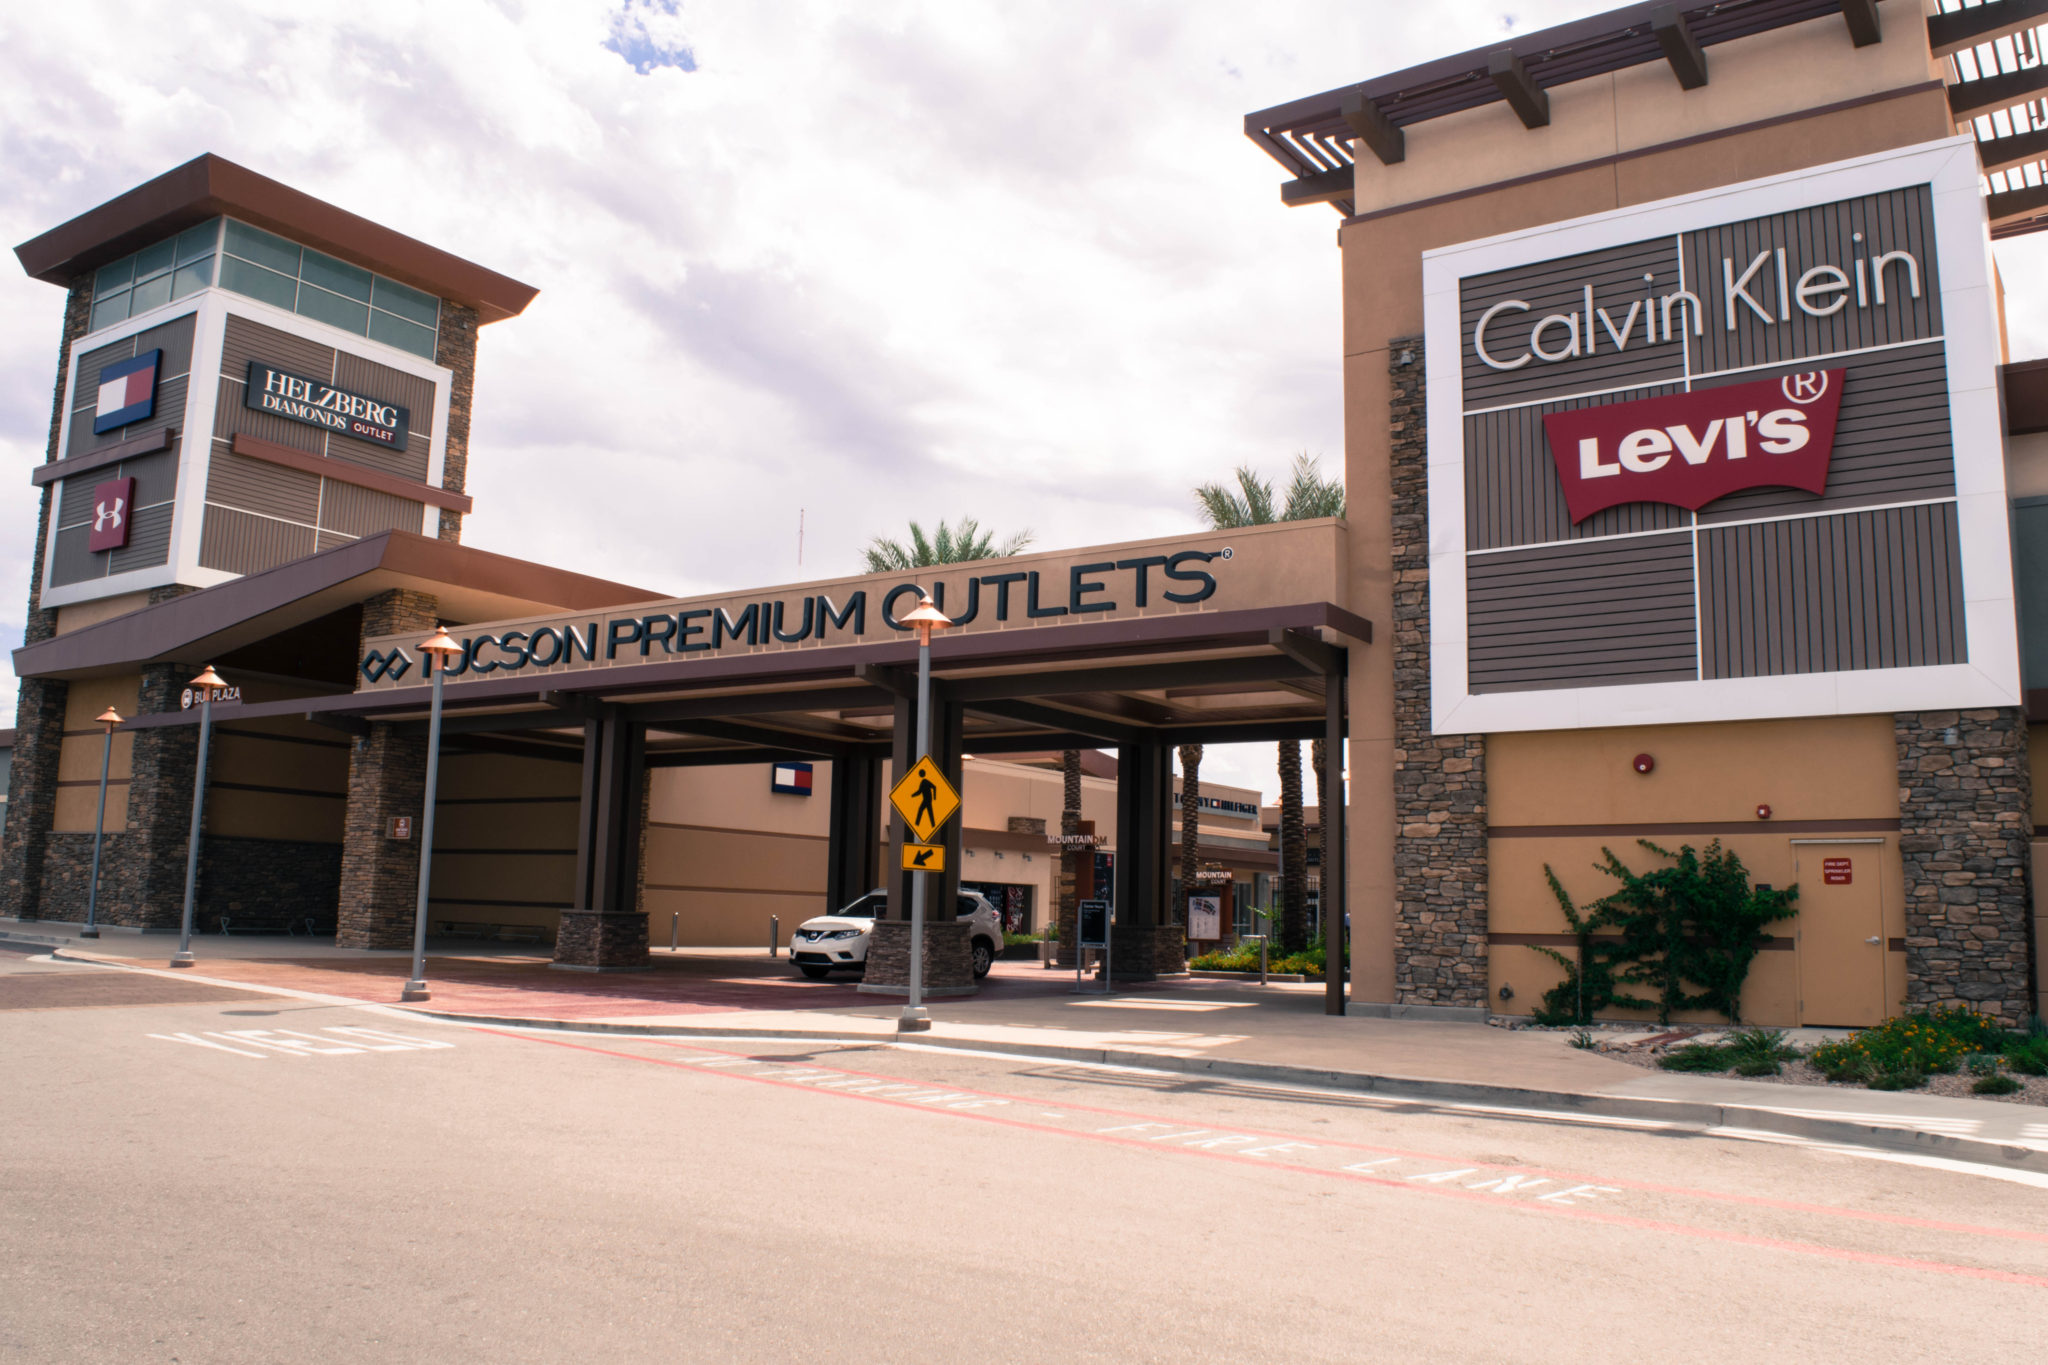 Visit the Tucson Premium Outlets in Marana Arizona